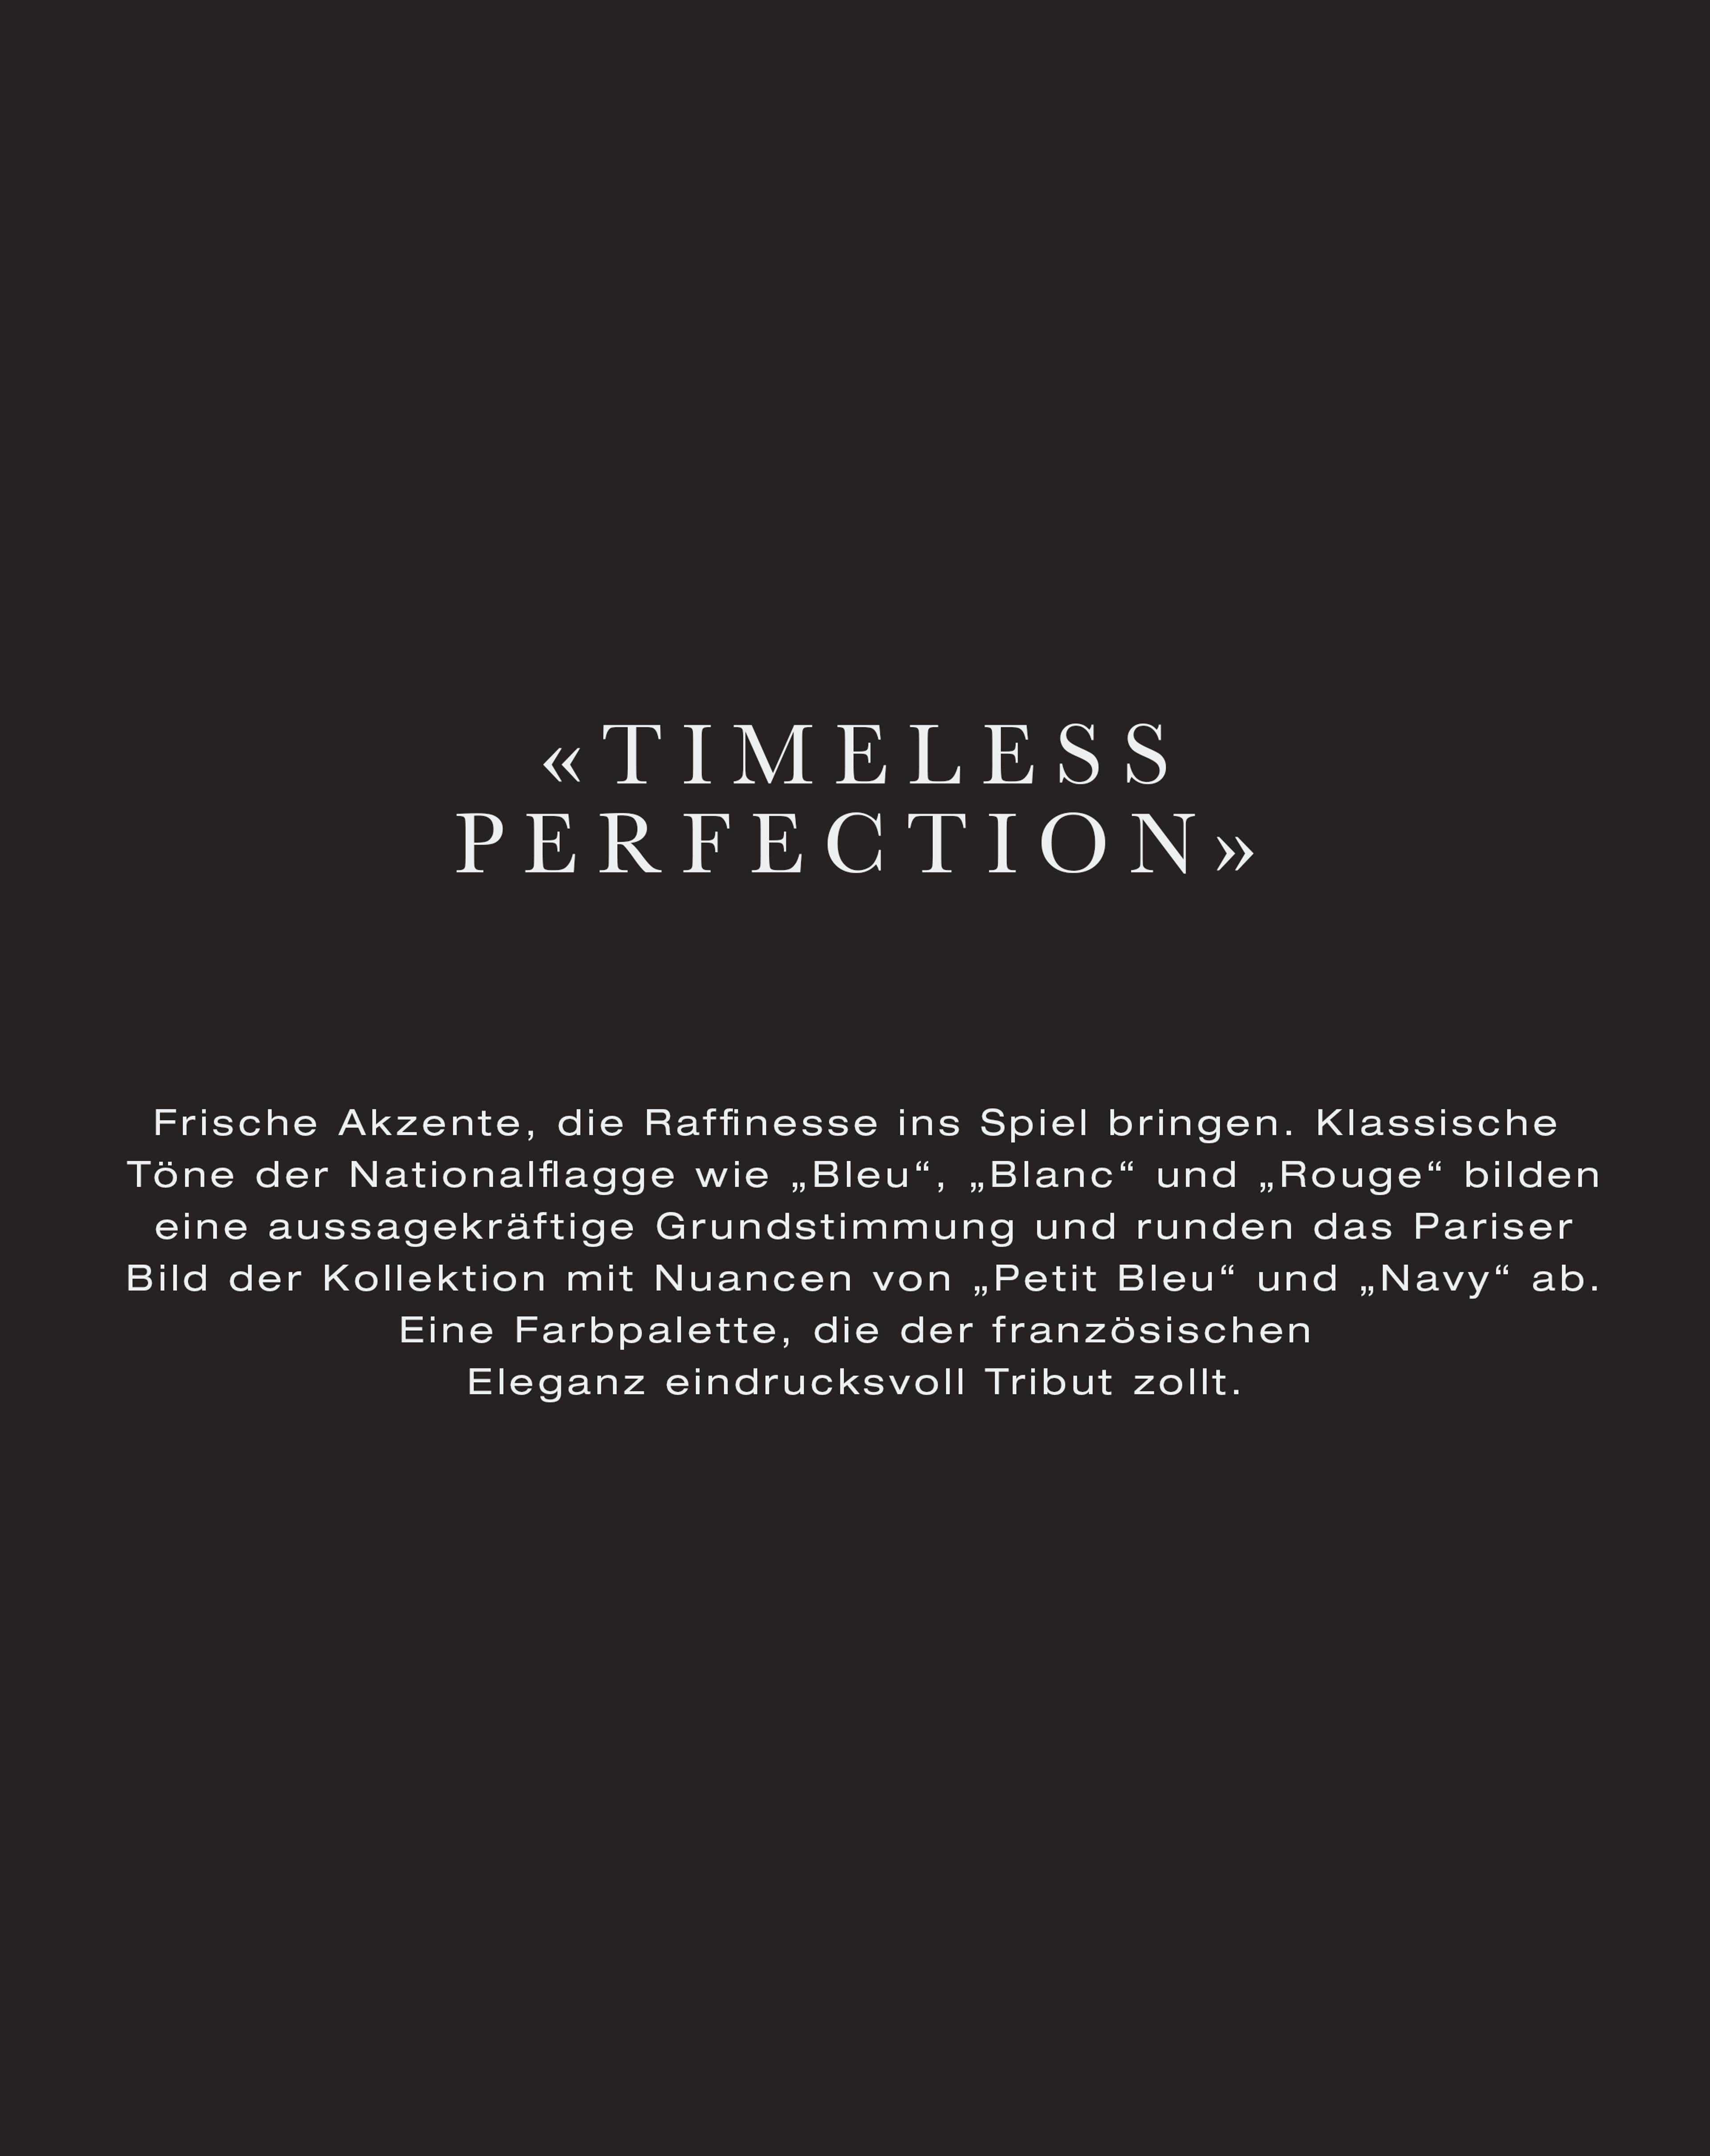 Timeless Perfection